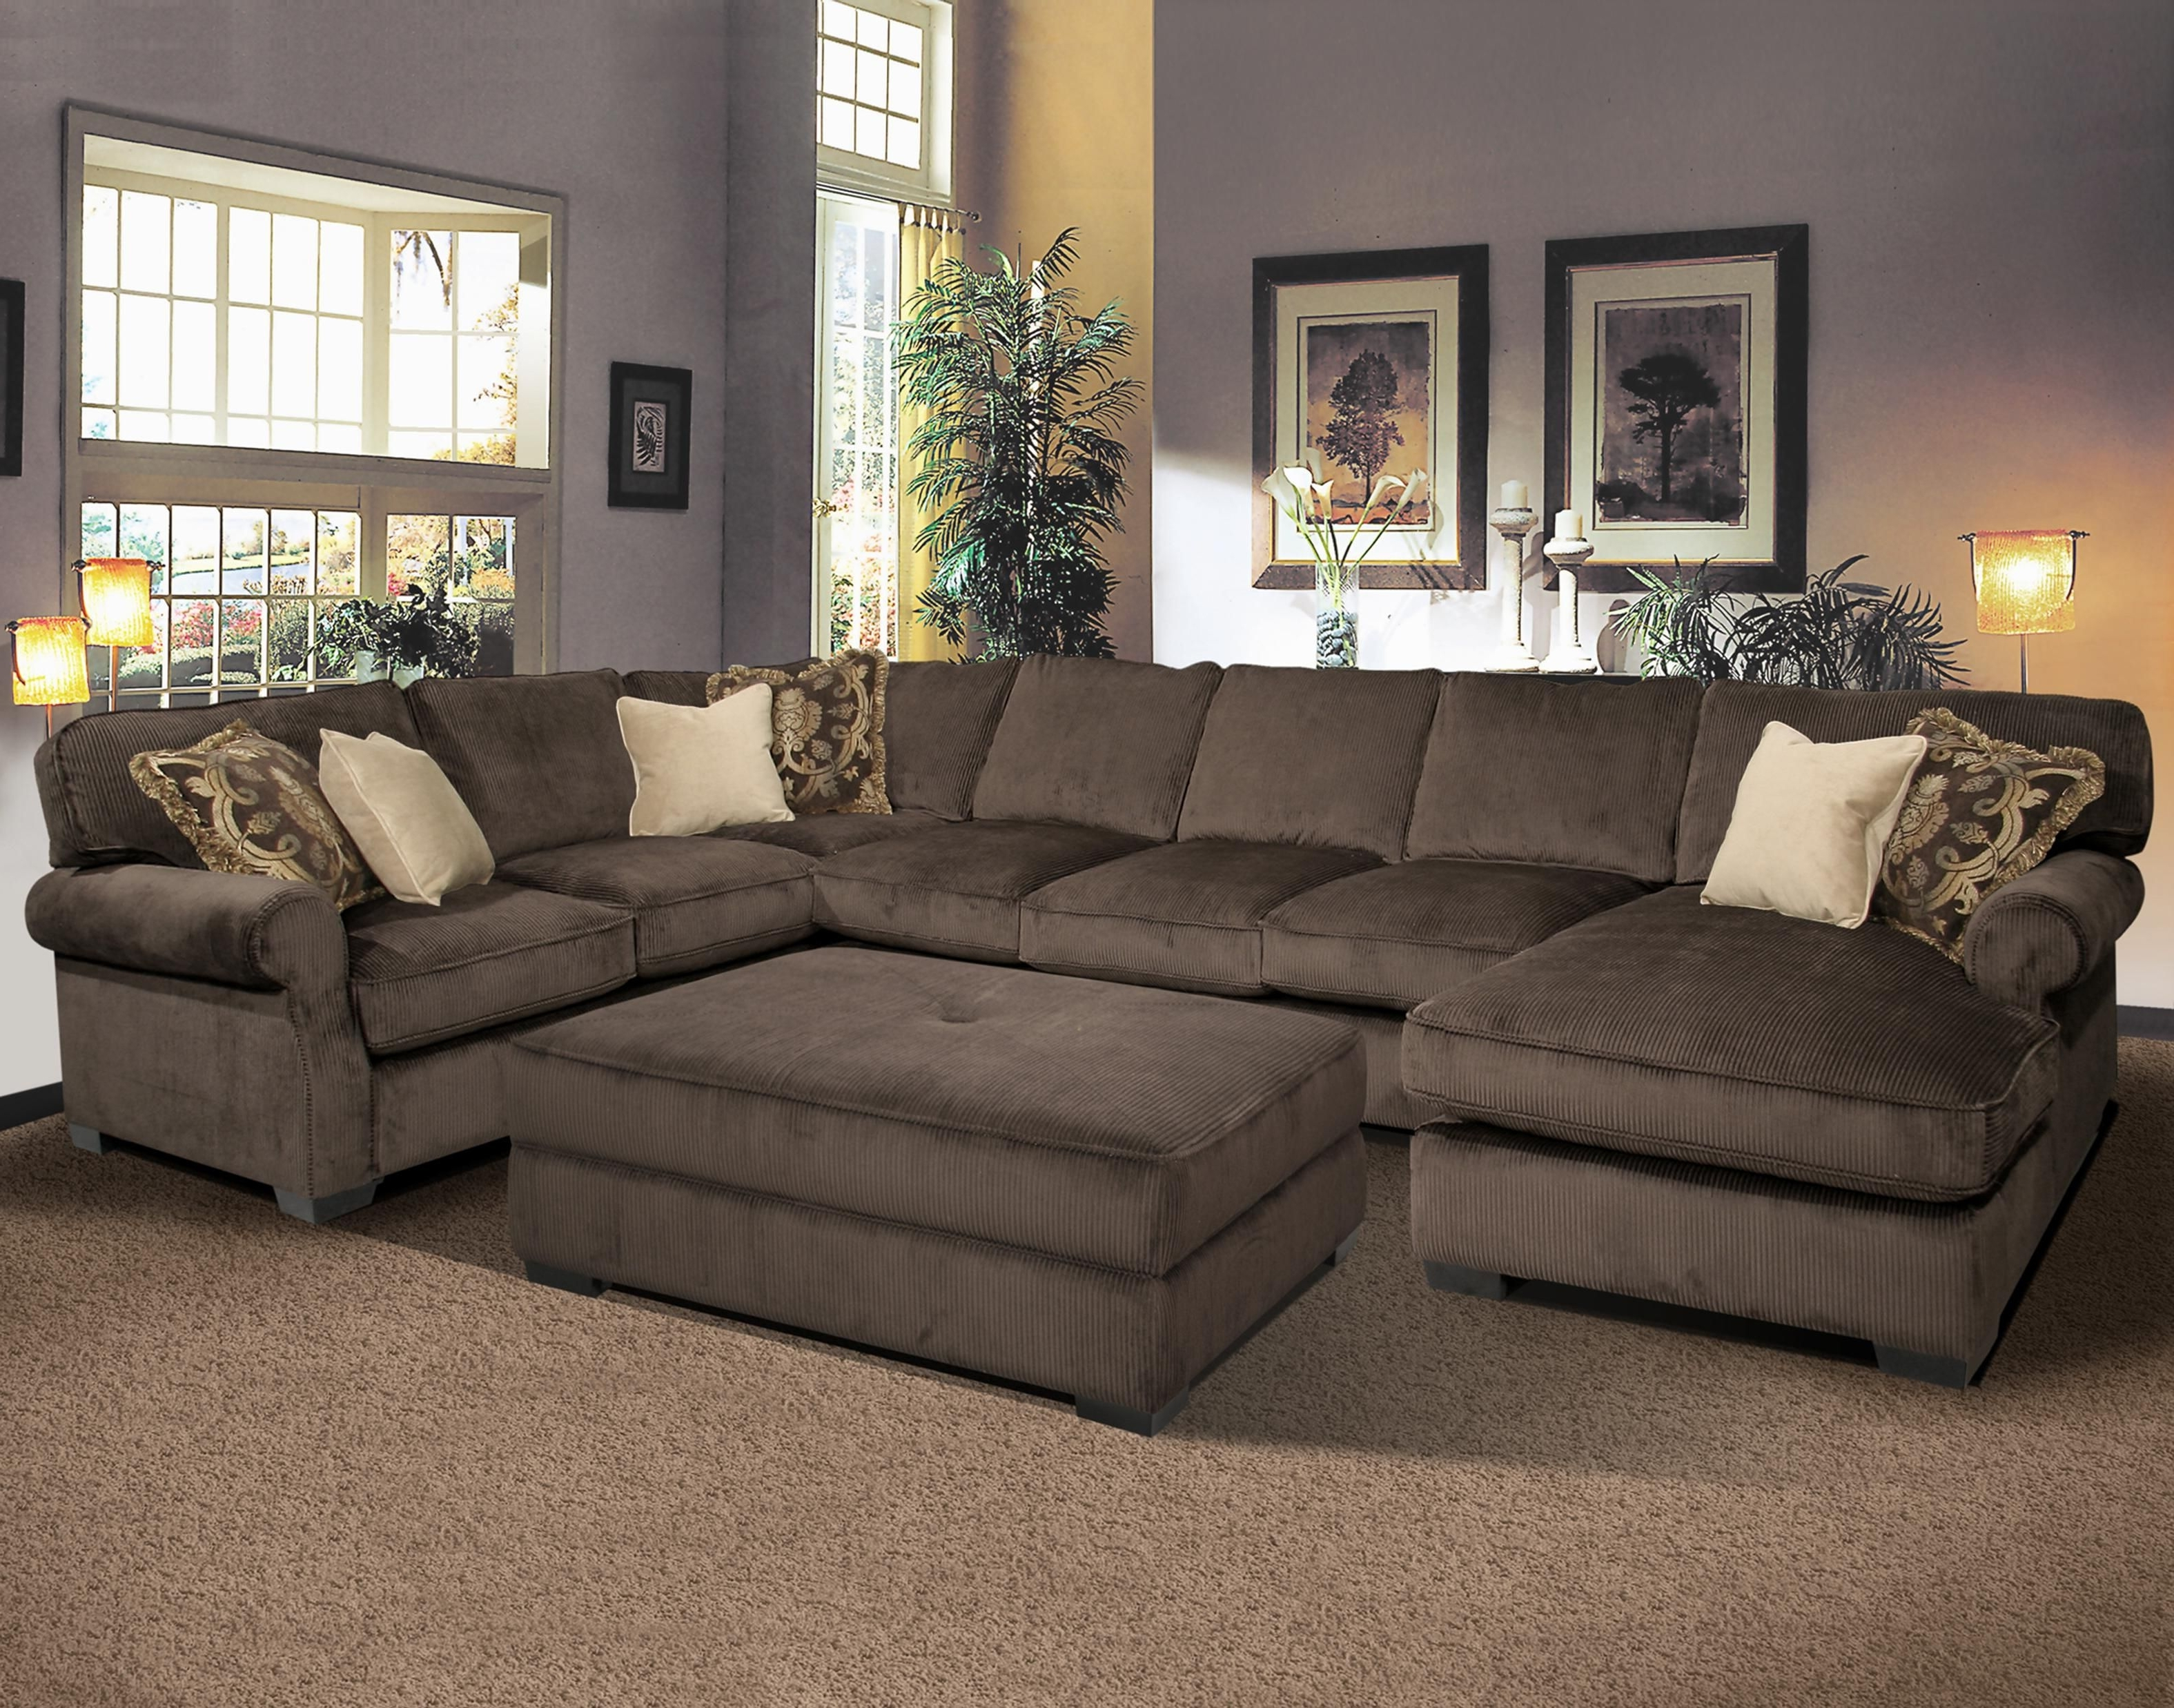 Most Popular Grand Island Oversized Cocktail Ottoman For Sectional Sofa With Regard To Sectional Sofas With Chaise And Ottoman (View 2 of 20)